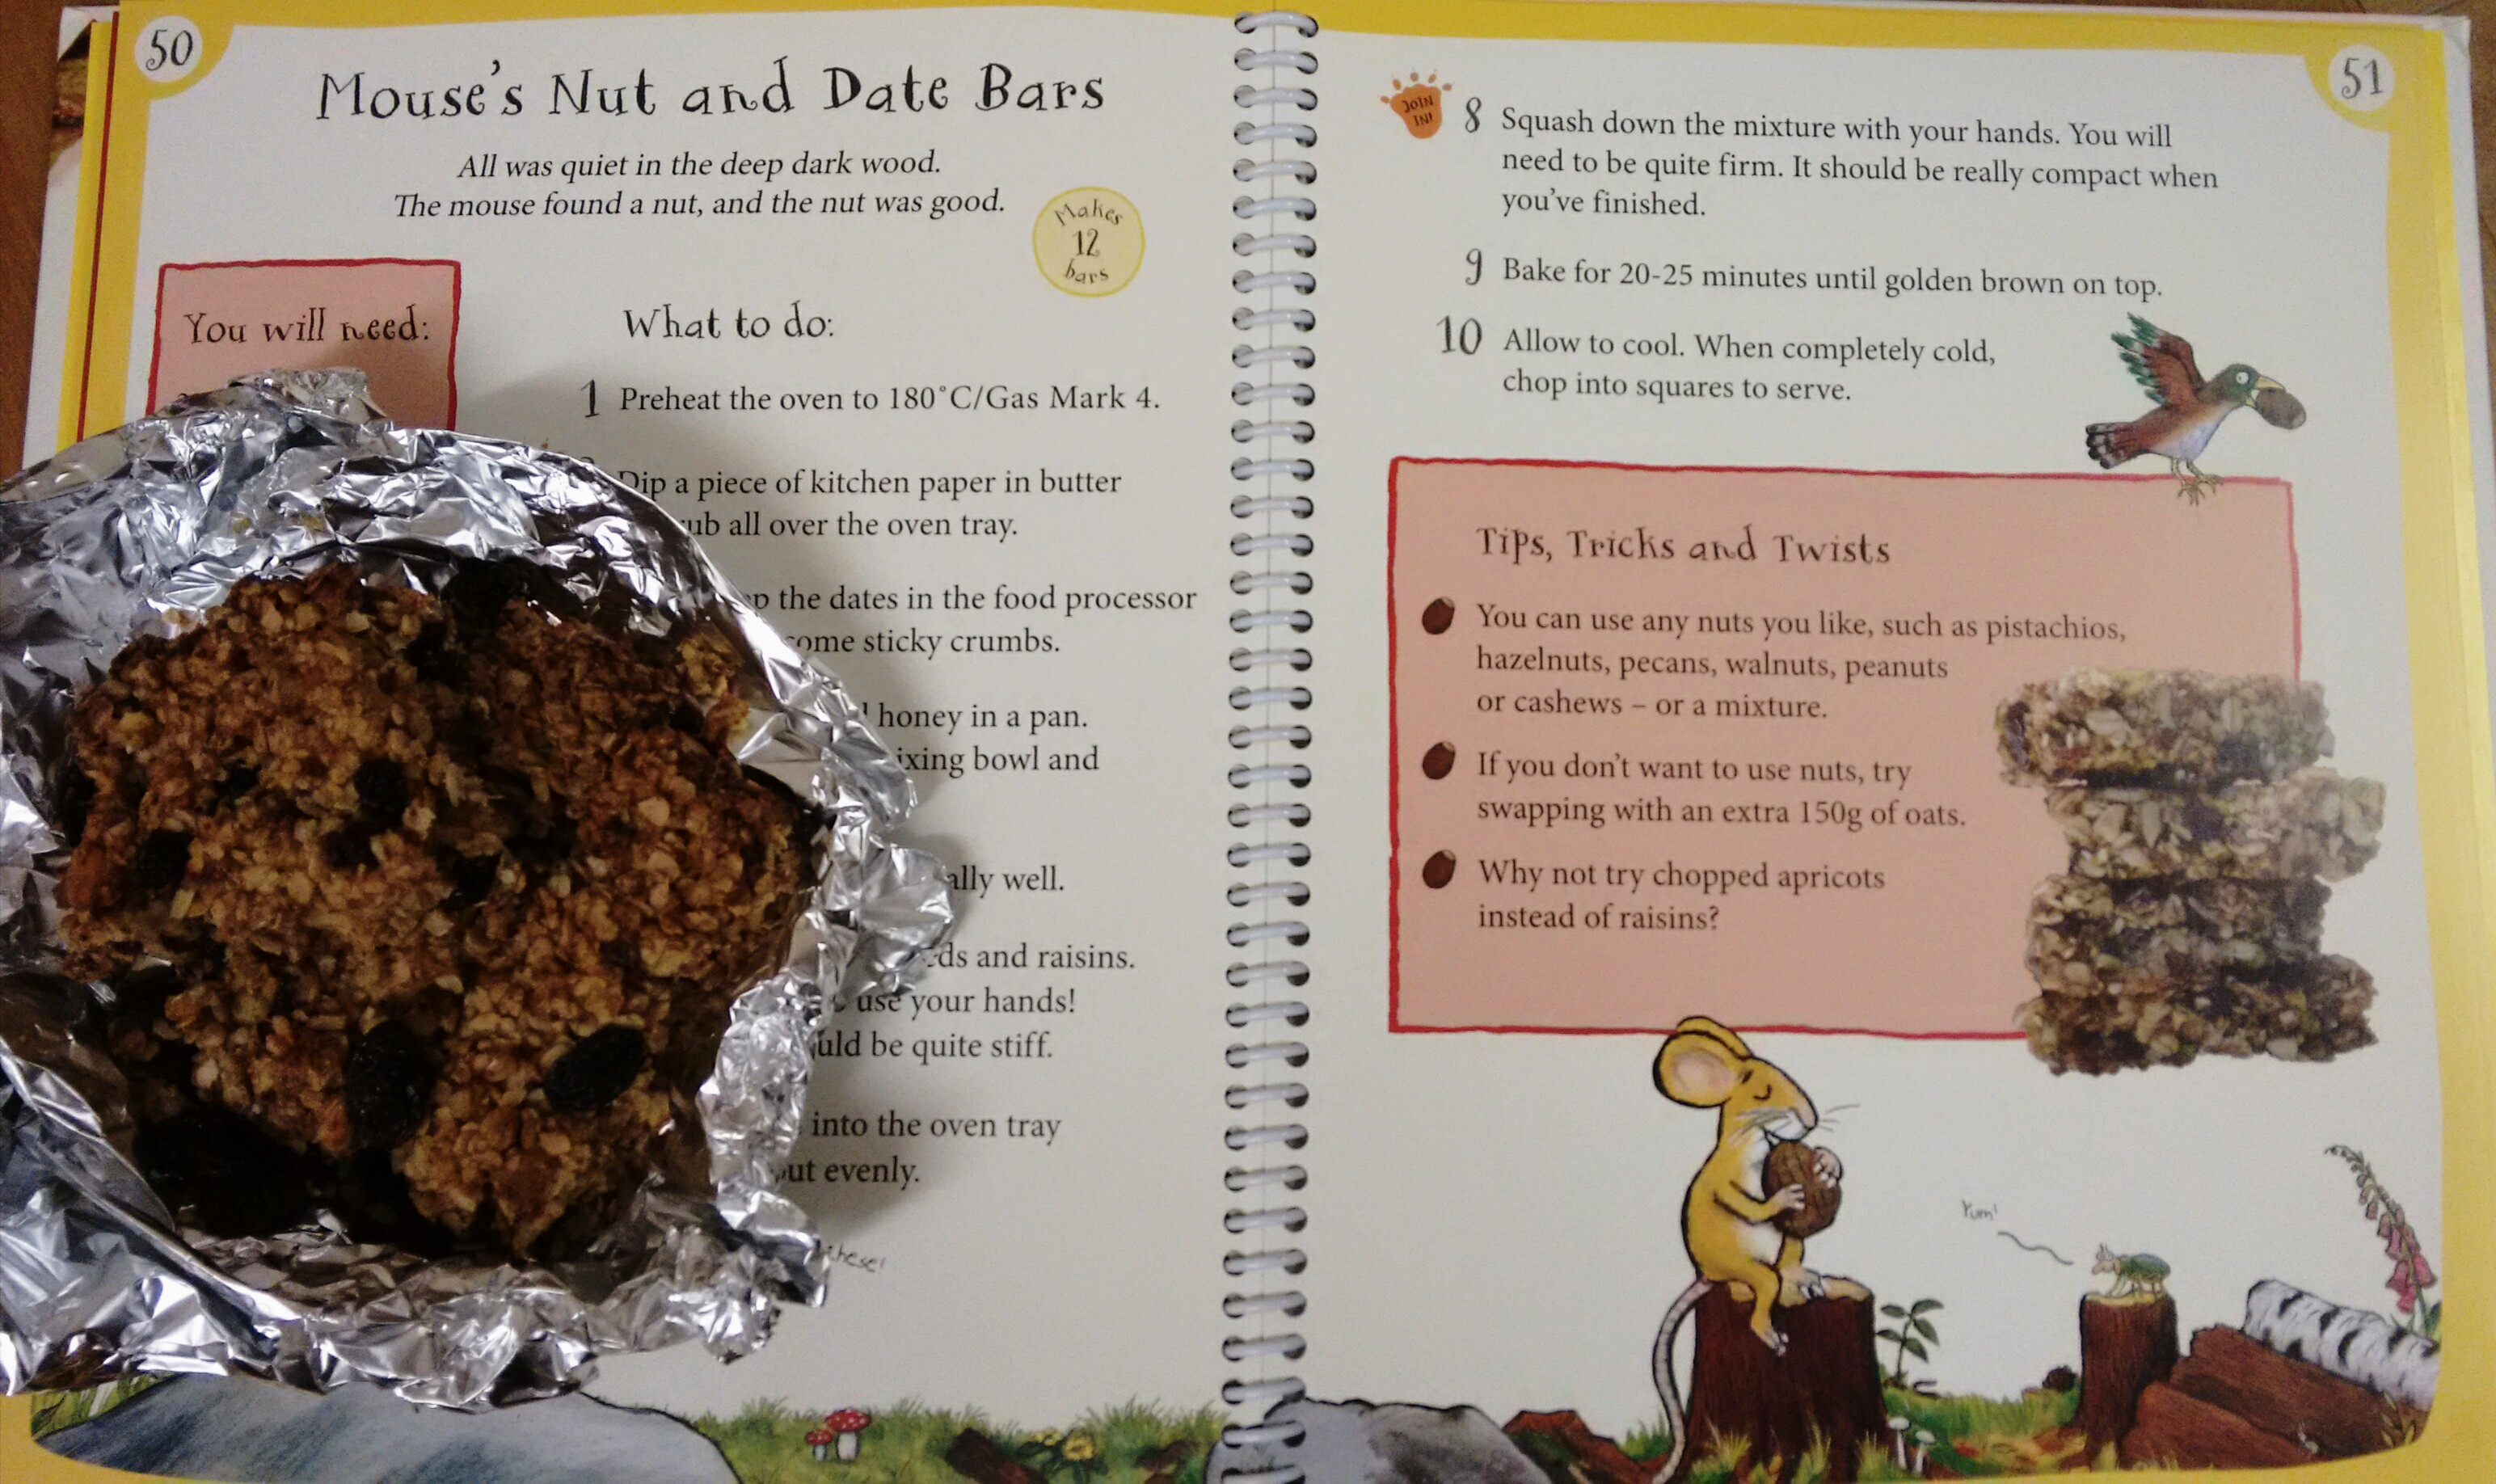 Gruffalo Mouse's Nut and Date bars